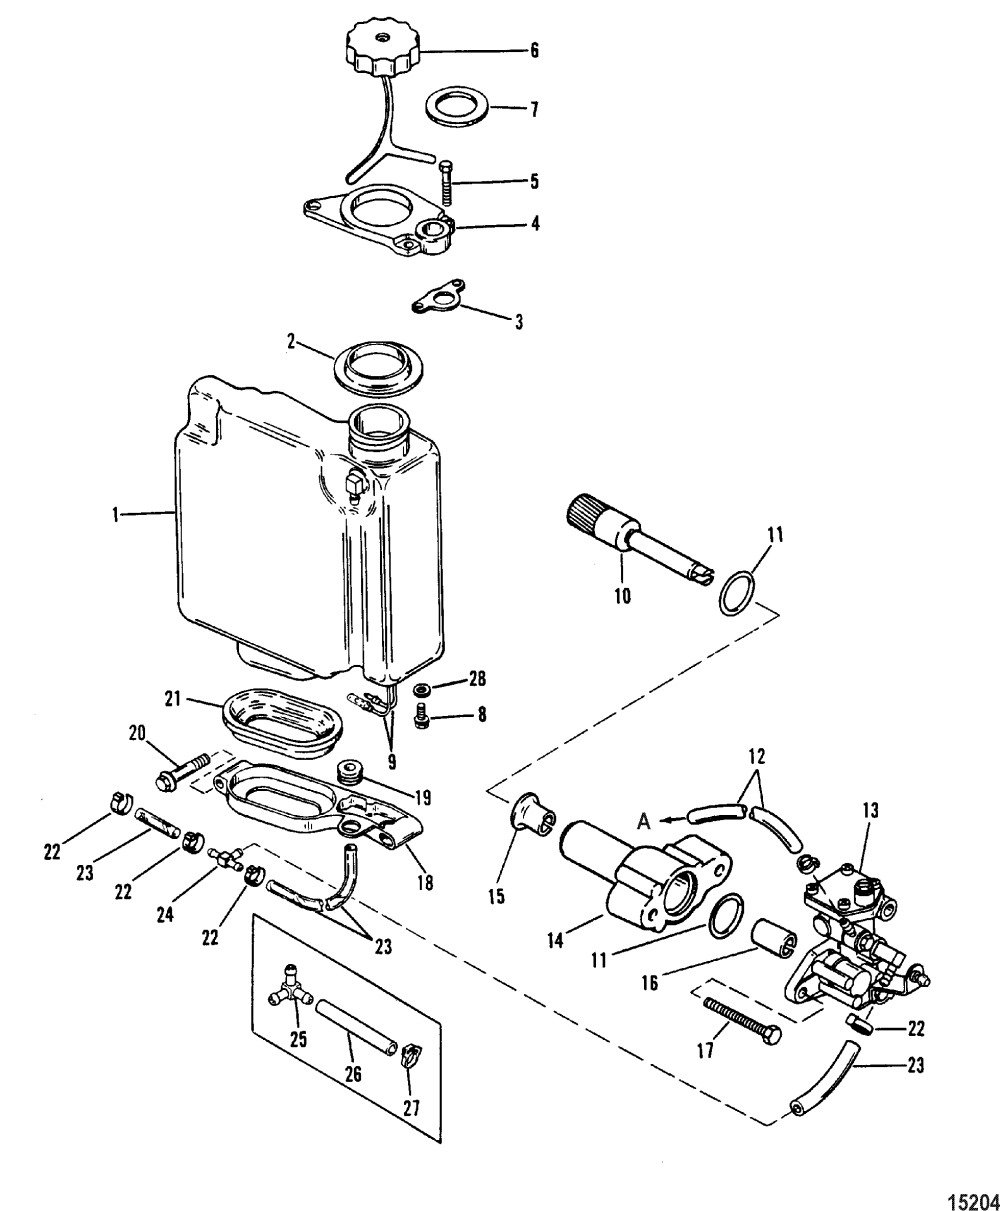 medium resolution of oil injection components for mariner mercury sea ray 100 115 diagram of 1990 mercury marine sea ray 9100412wd electrical components